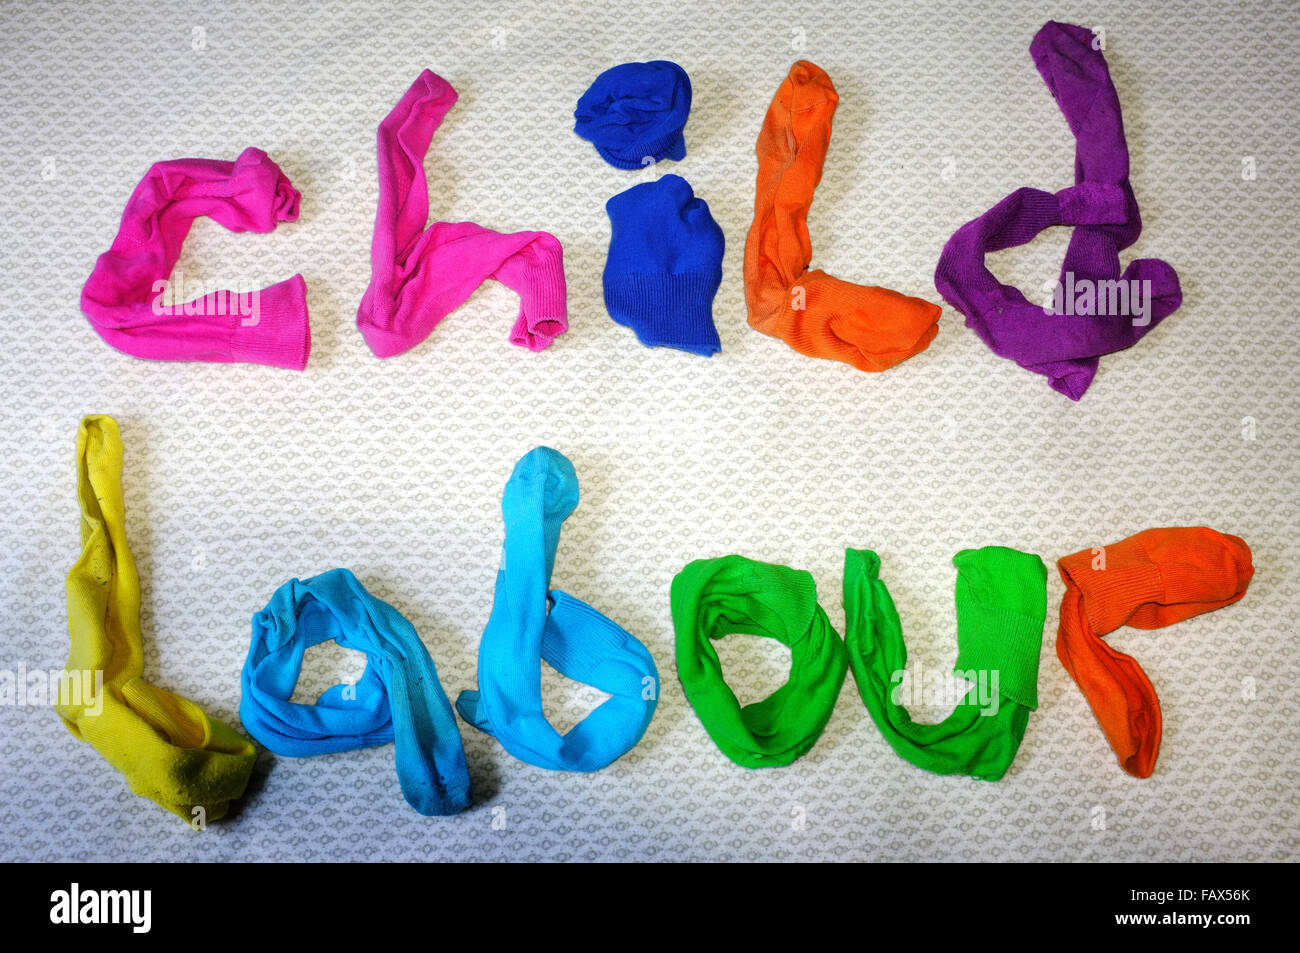 The words child labour made out of colourful socks laying on a duvet cover. - Stock Image